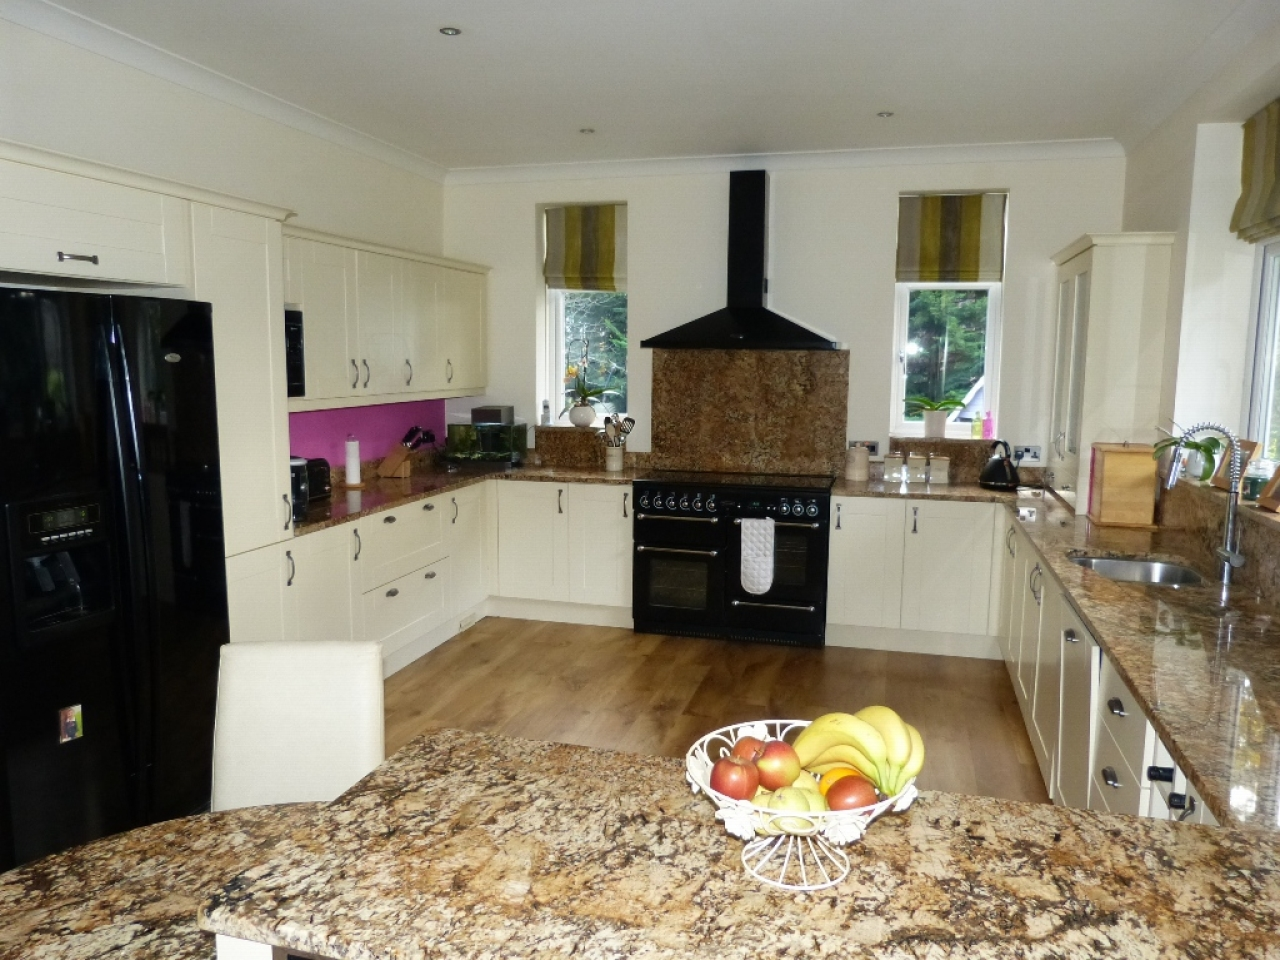 5 bedroom detached house SSTC in Abergele - Photograph 8